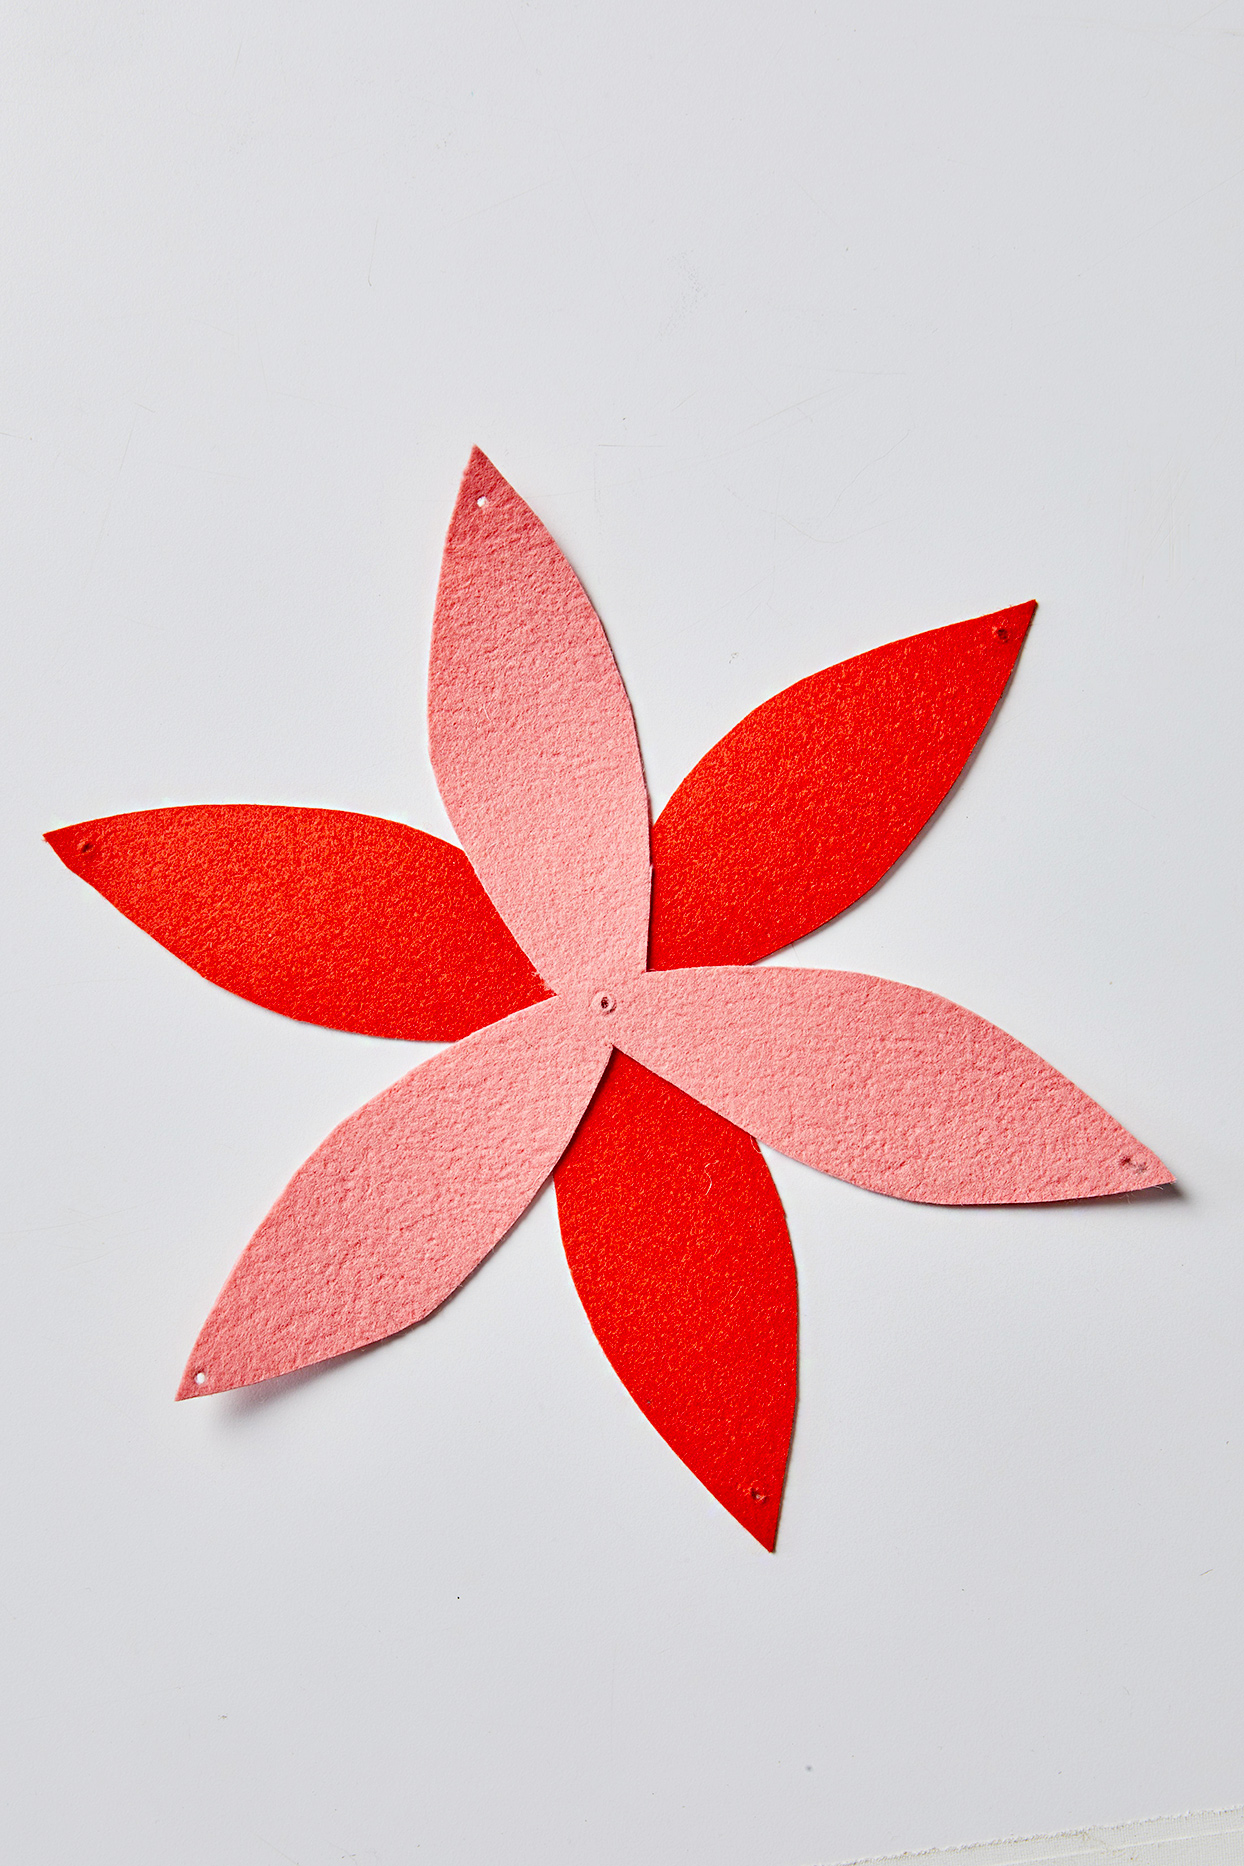 Two felt pieces in a propeller shape